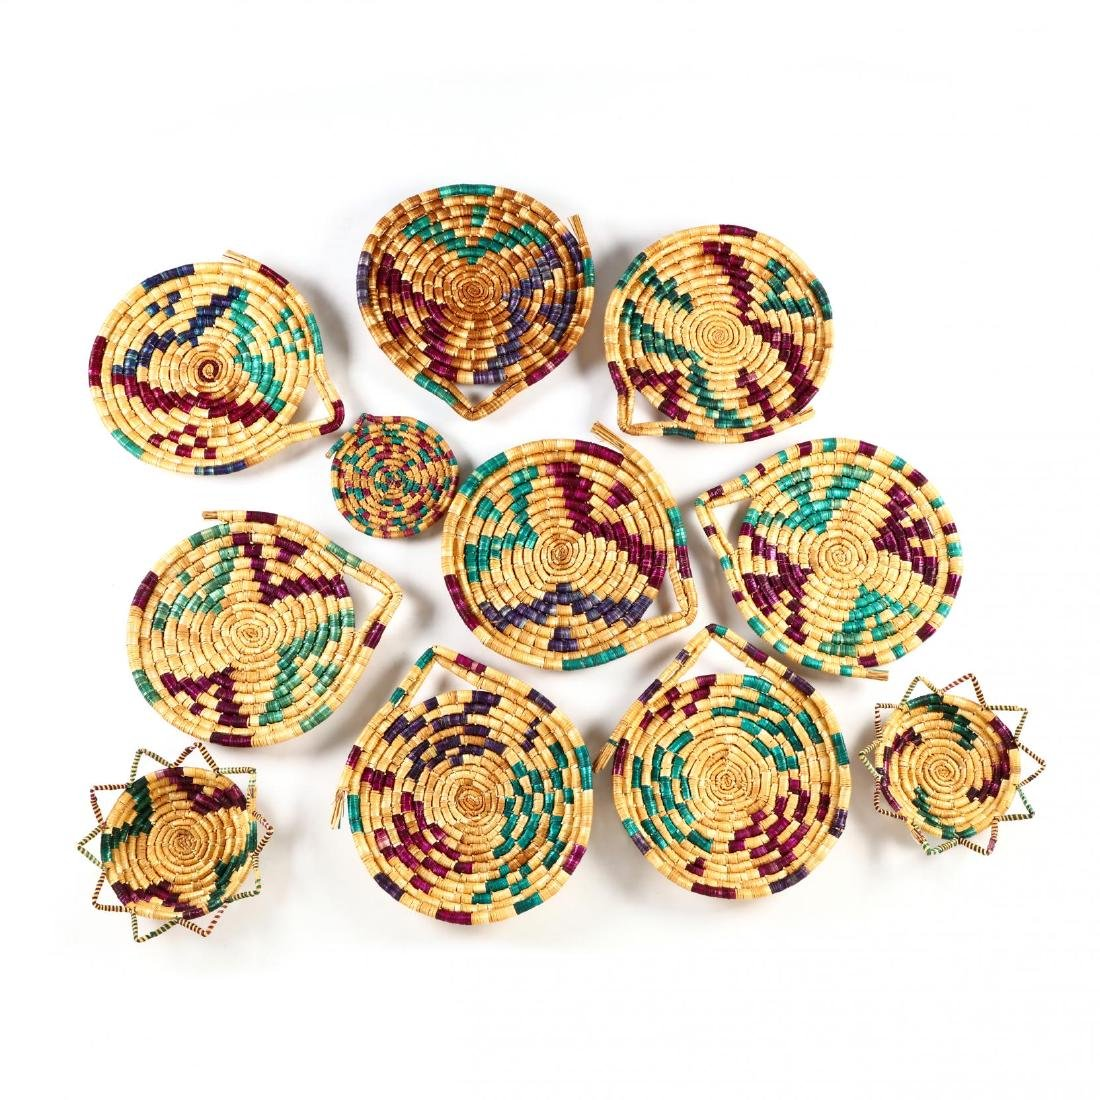 Set of Decorative Woven Straw Table Mats